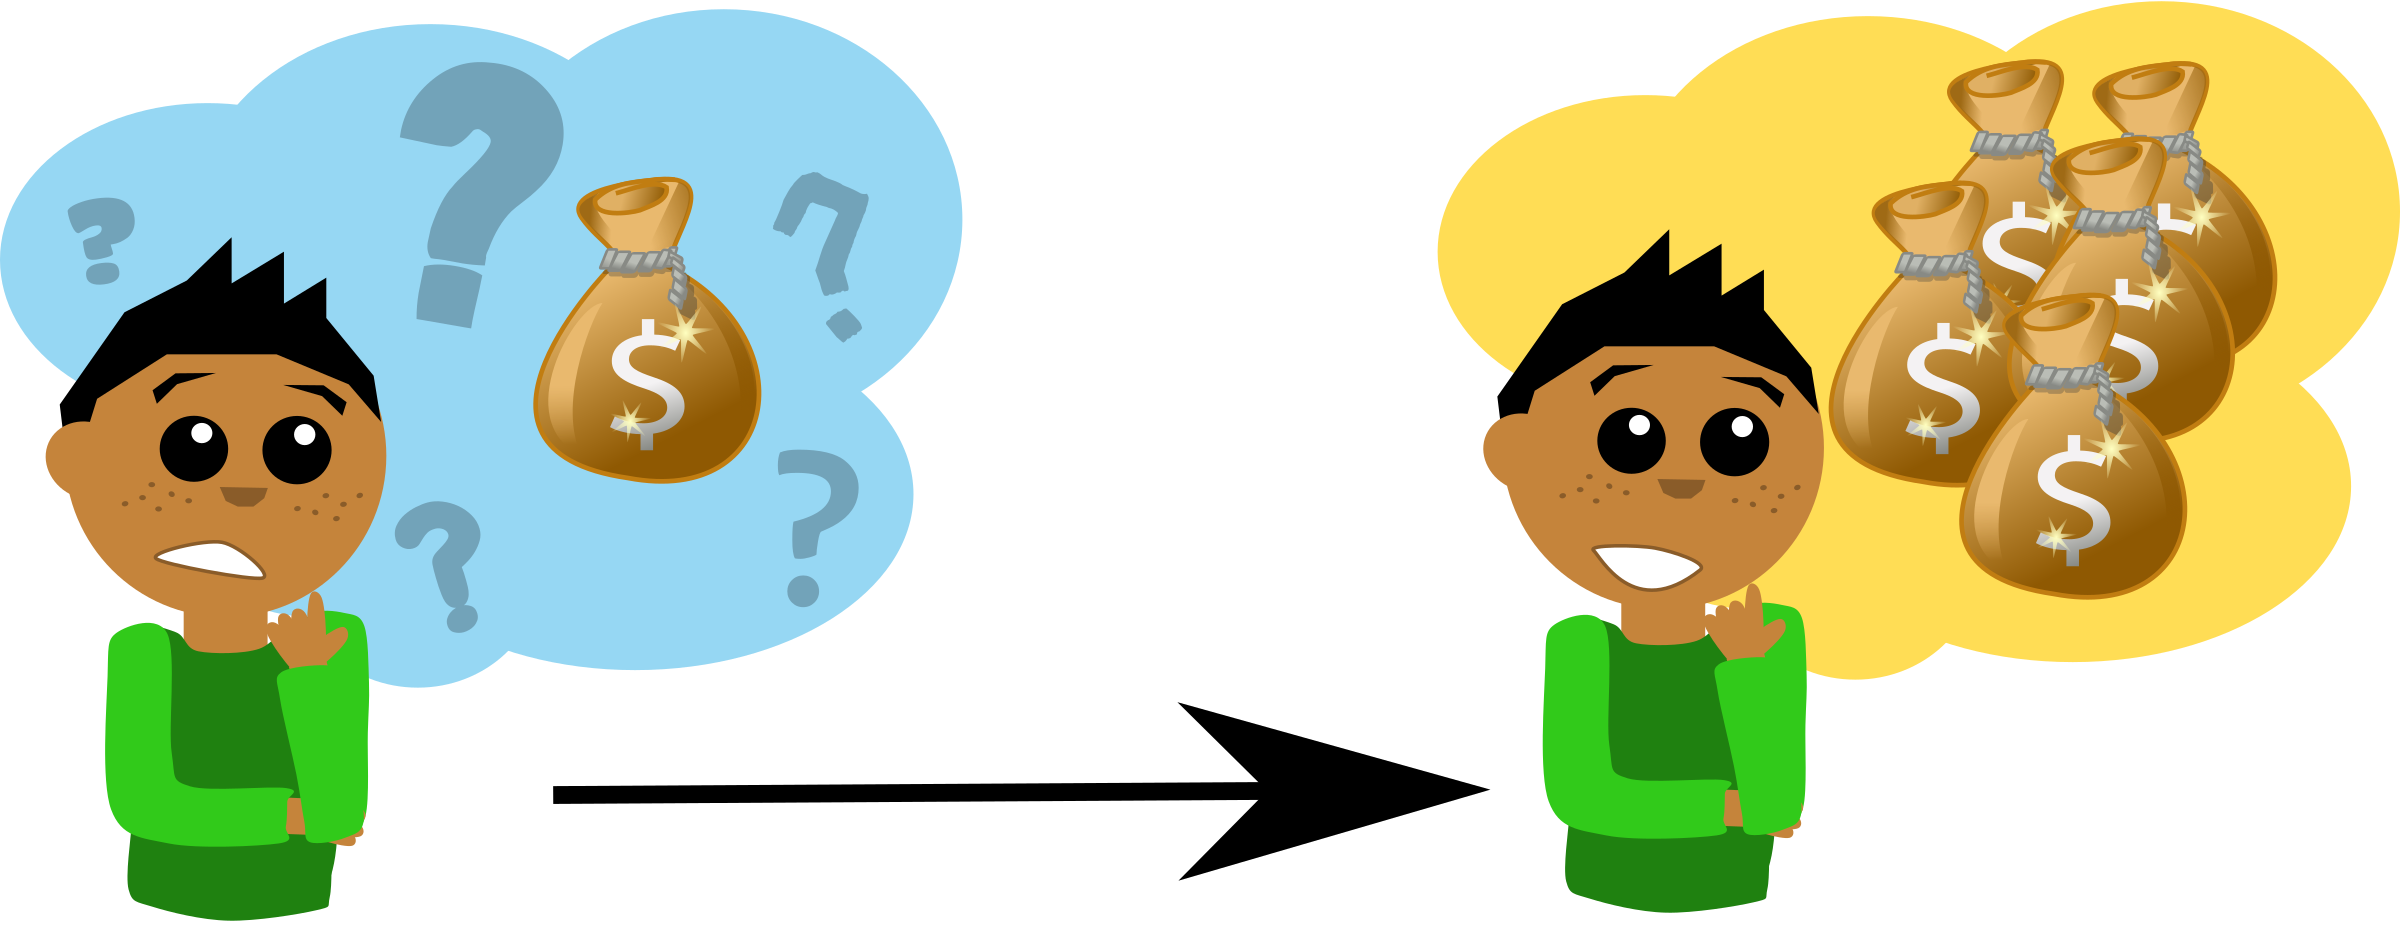 Dream clipart money guy. Questioning about icons png